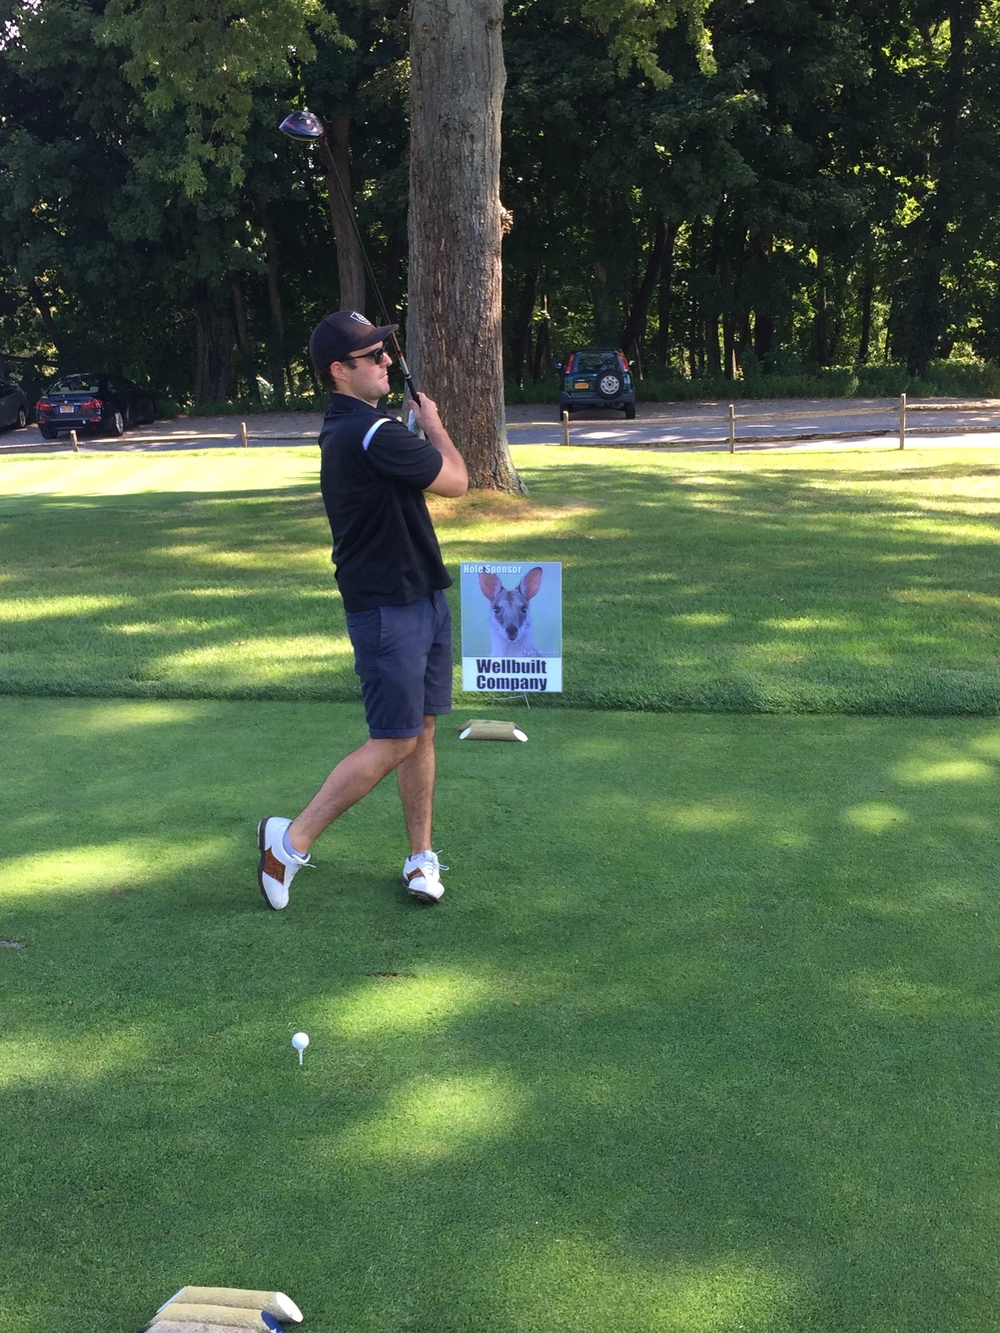 wellbuilt golf outing.JPG